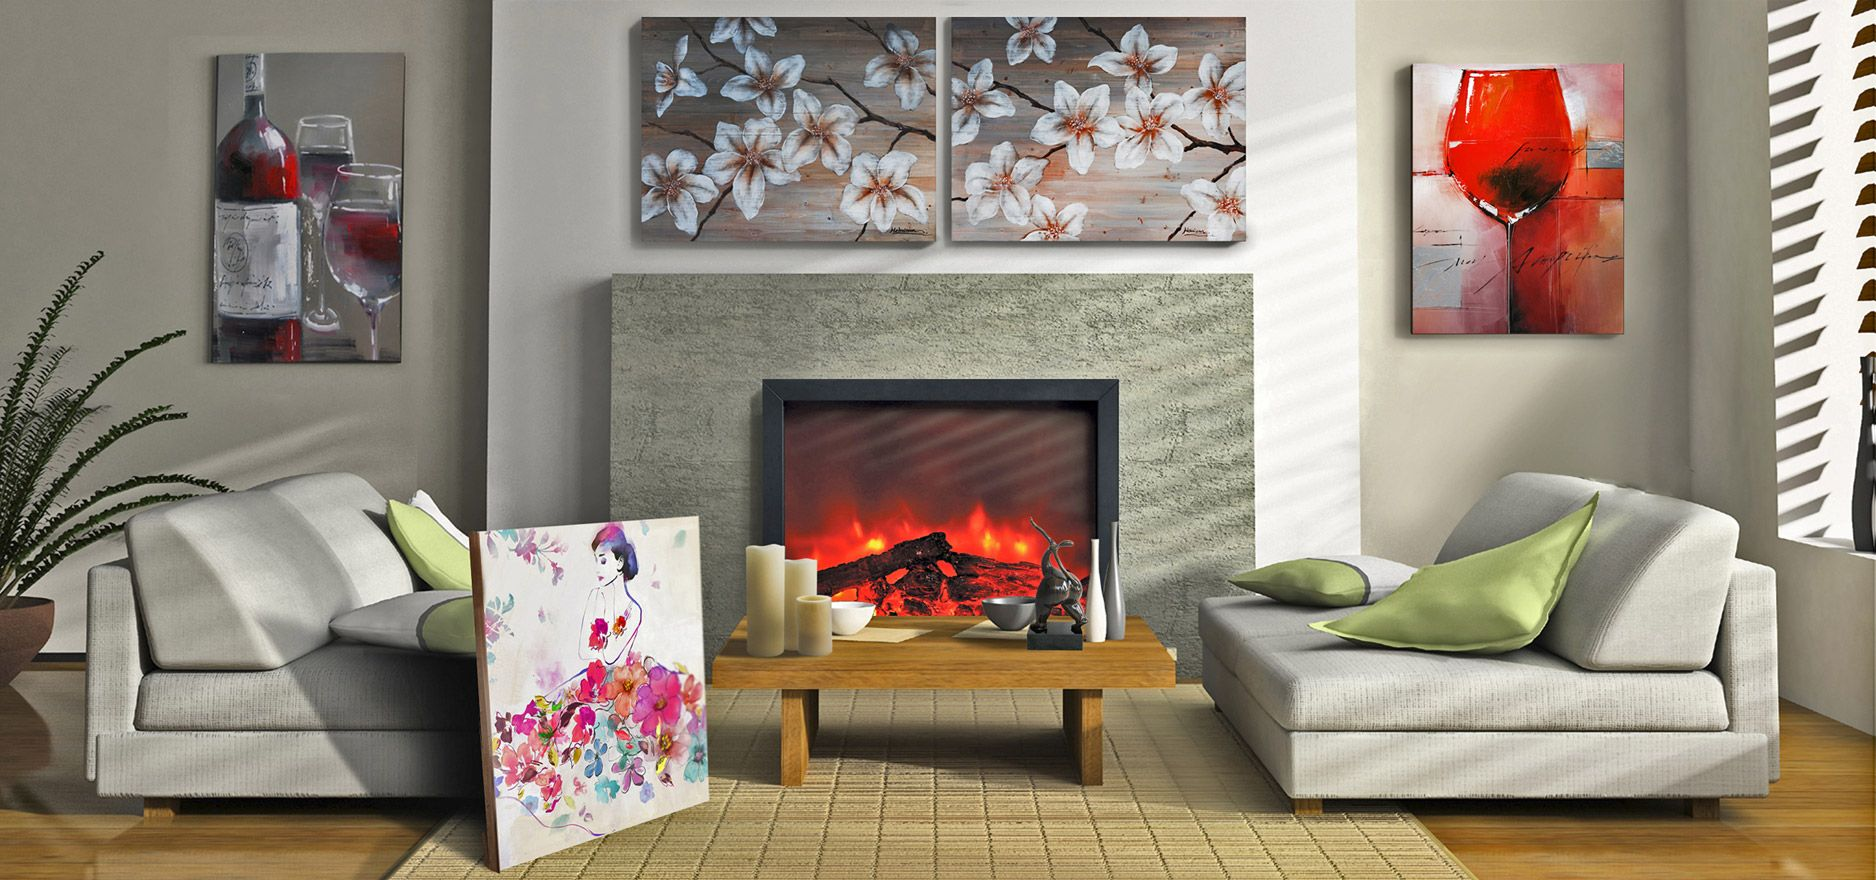 Save your trip to the specialty shop come see our wall art and home